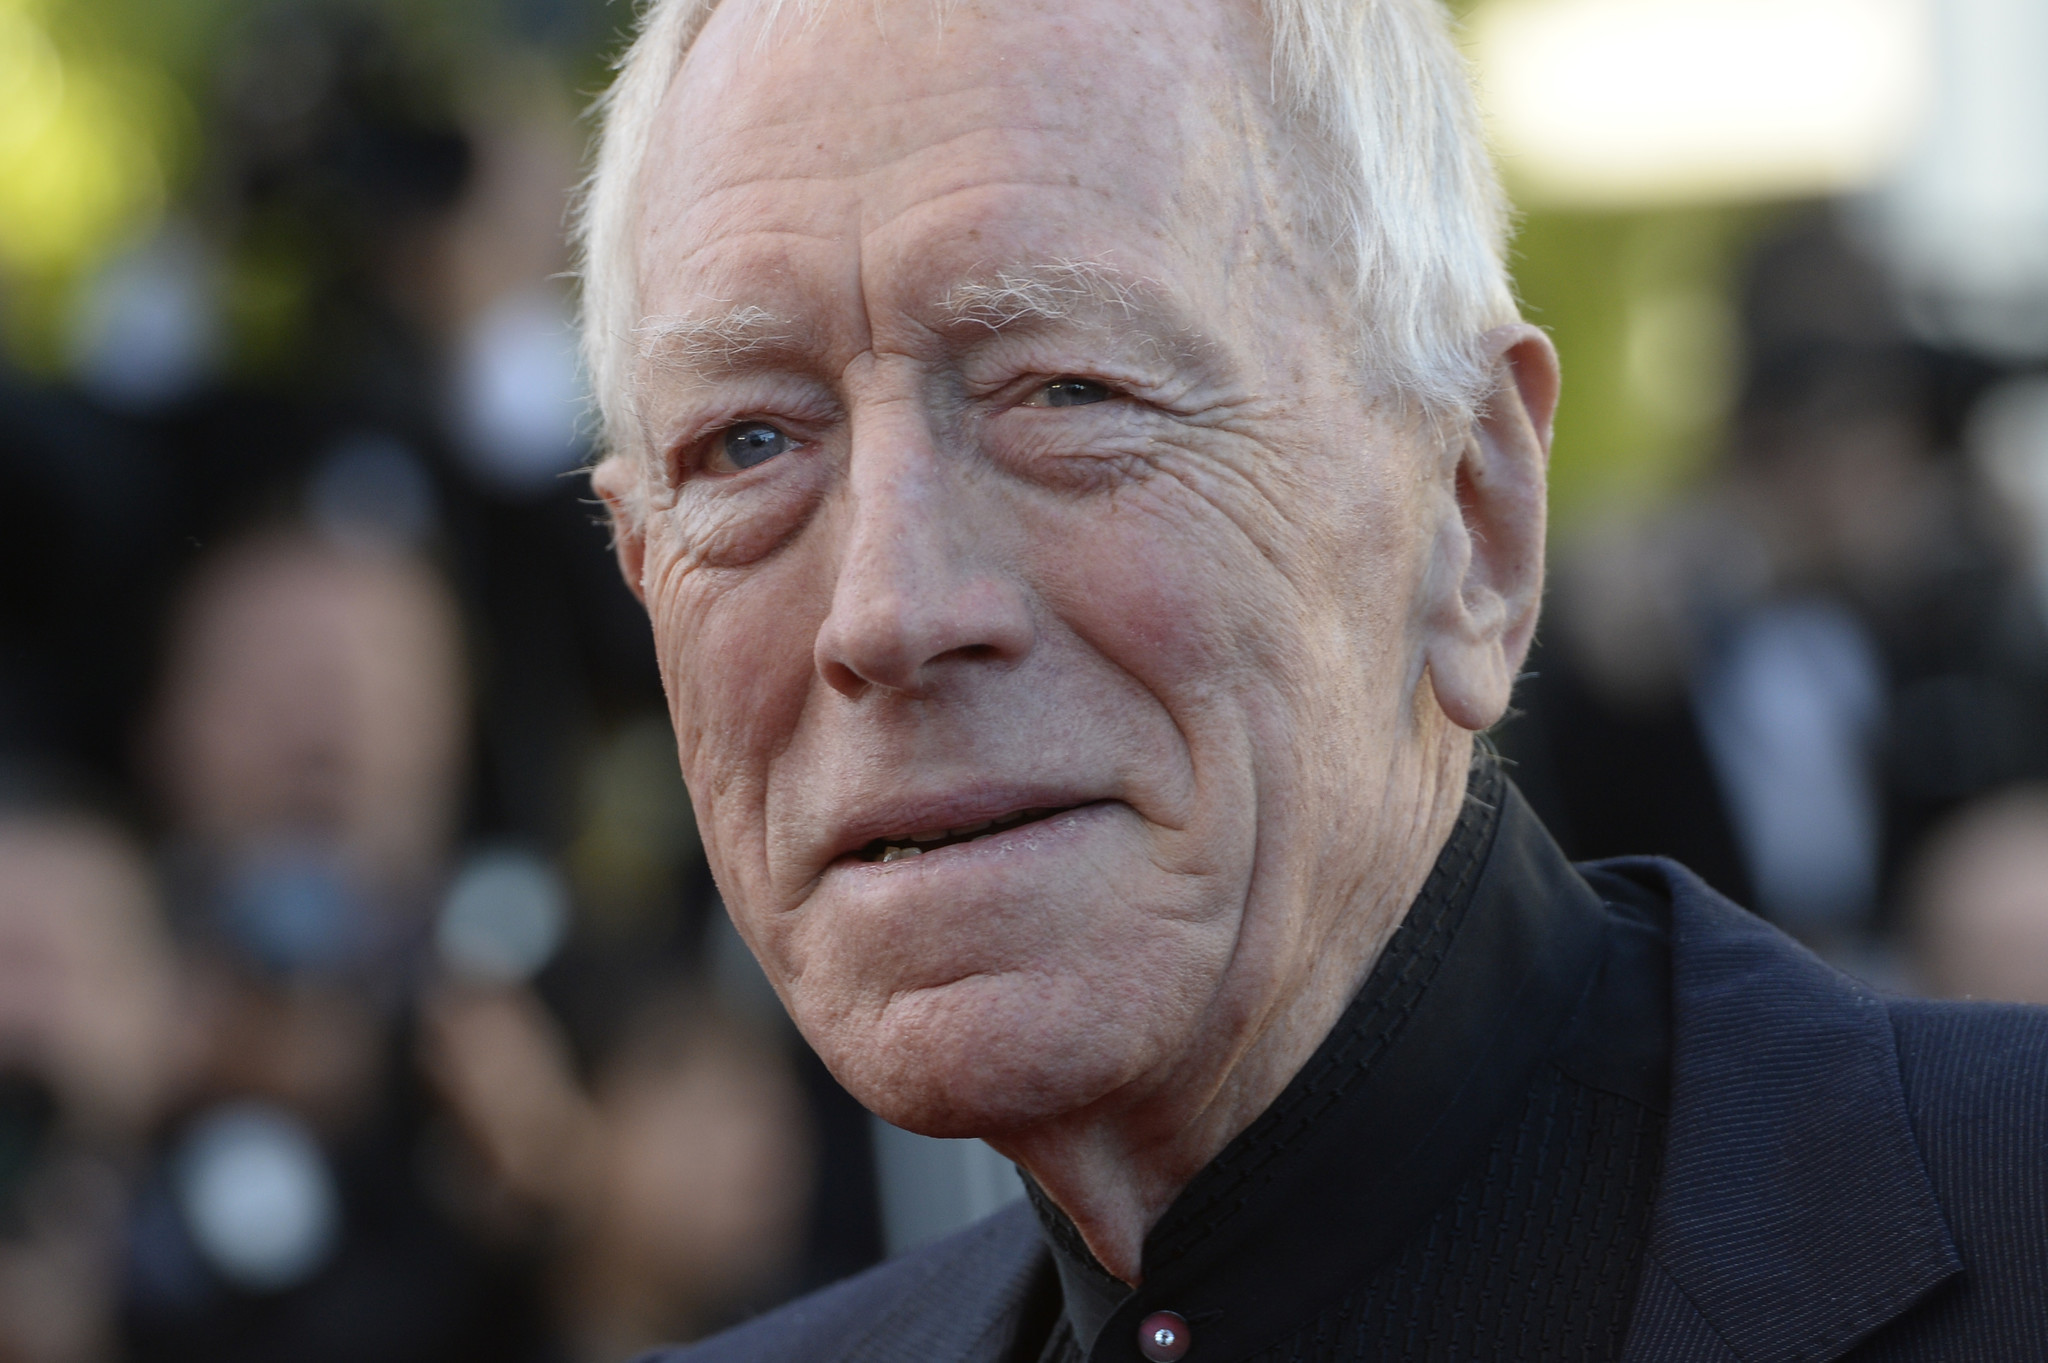 Max von Sydow, 'Flash Gordon' and 'The Seventh Seal' actor, dead at 90